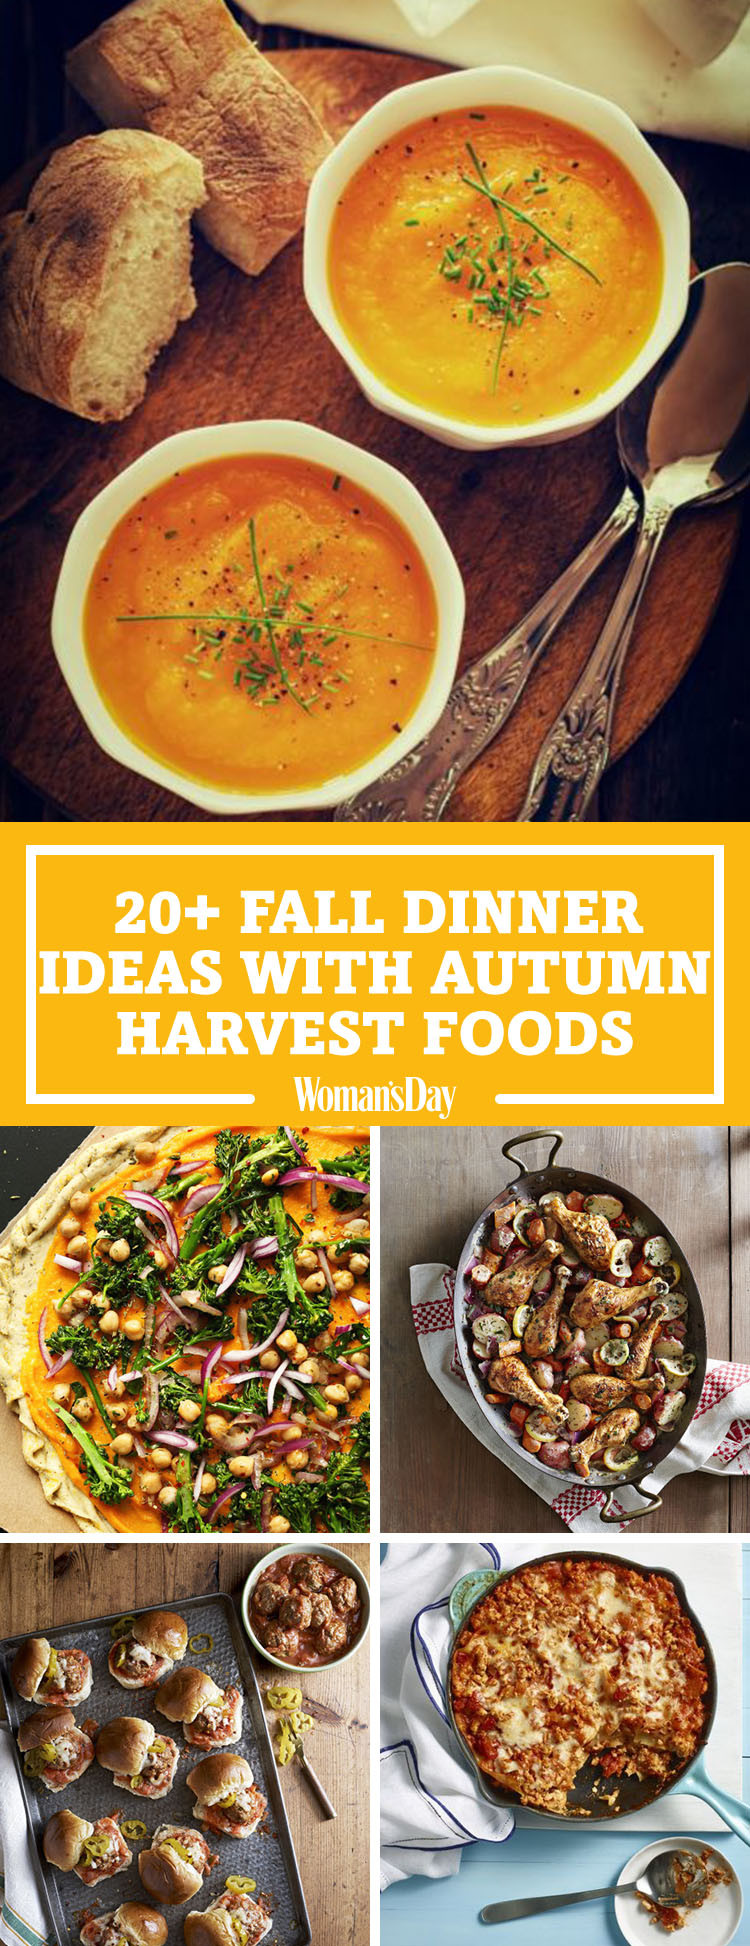 Fall Recipes Dinner  26 Easy Fall Dinner Ideas Best Dinner Recipes for Autumn